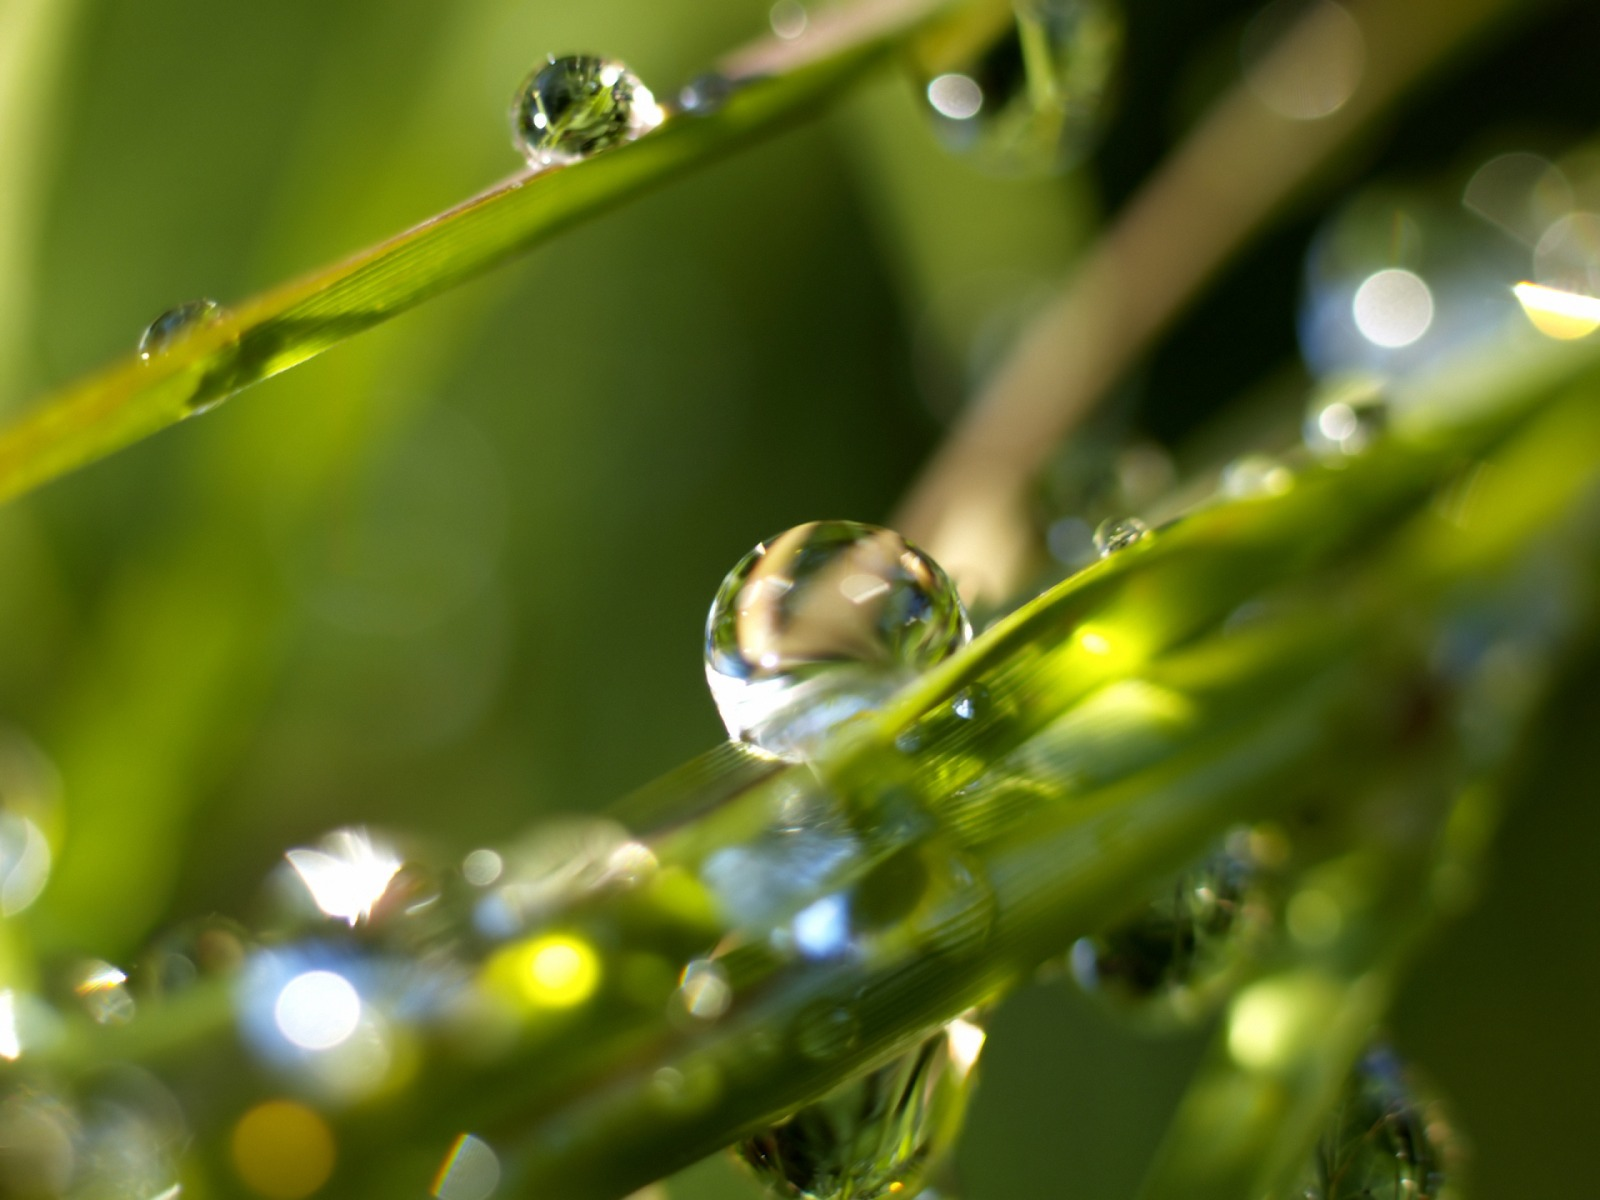 rain drops wallpaper plants nature wallpapers in jpg format for free